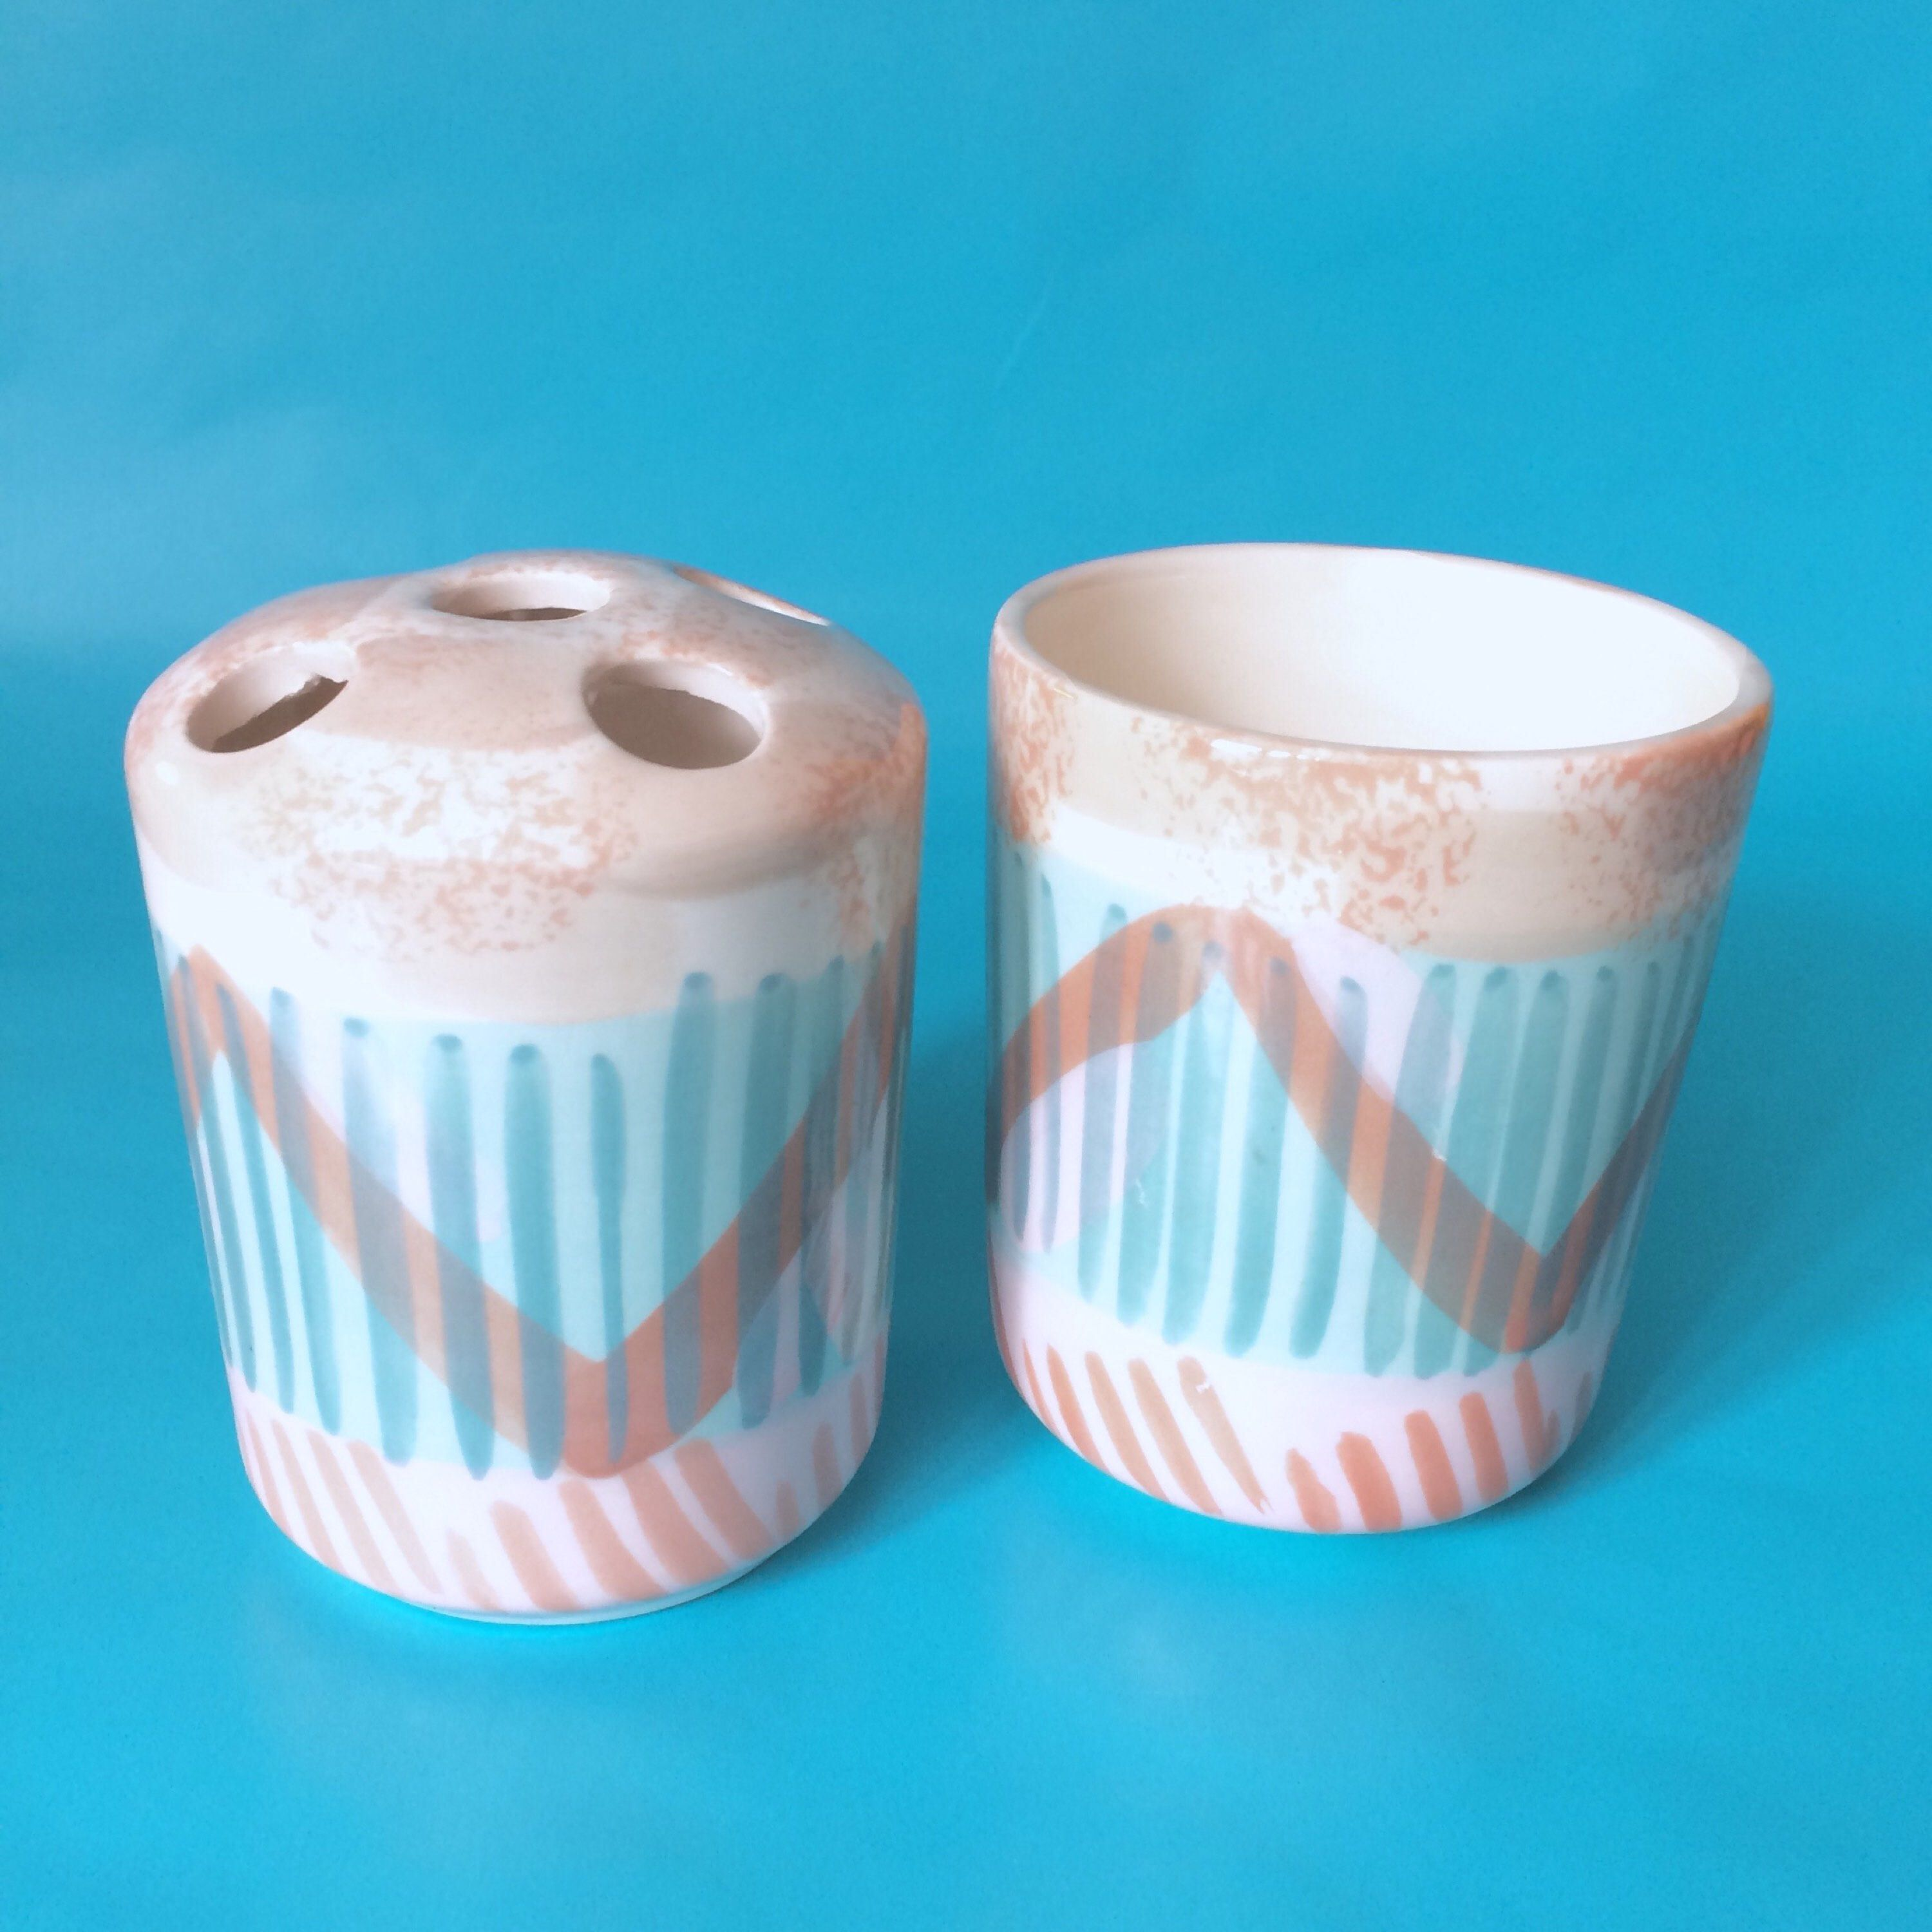 Southwest Bathroom Set, Pastel Toothbrush Holder & Cup, Abstract ...